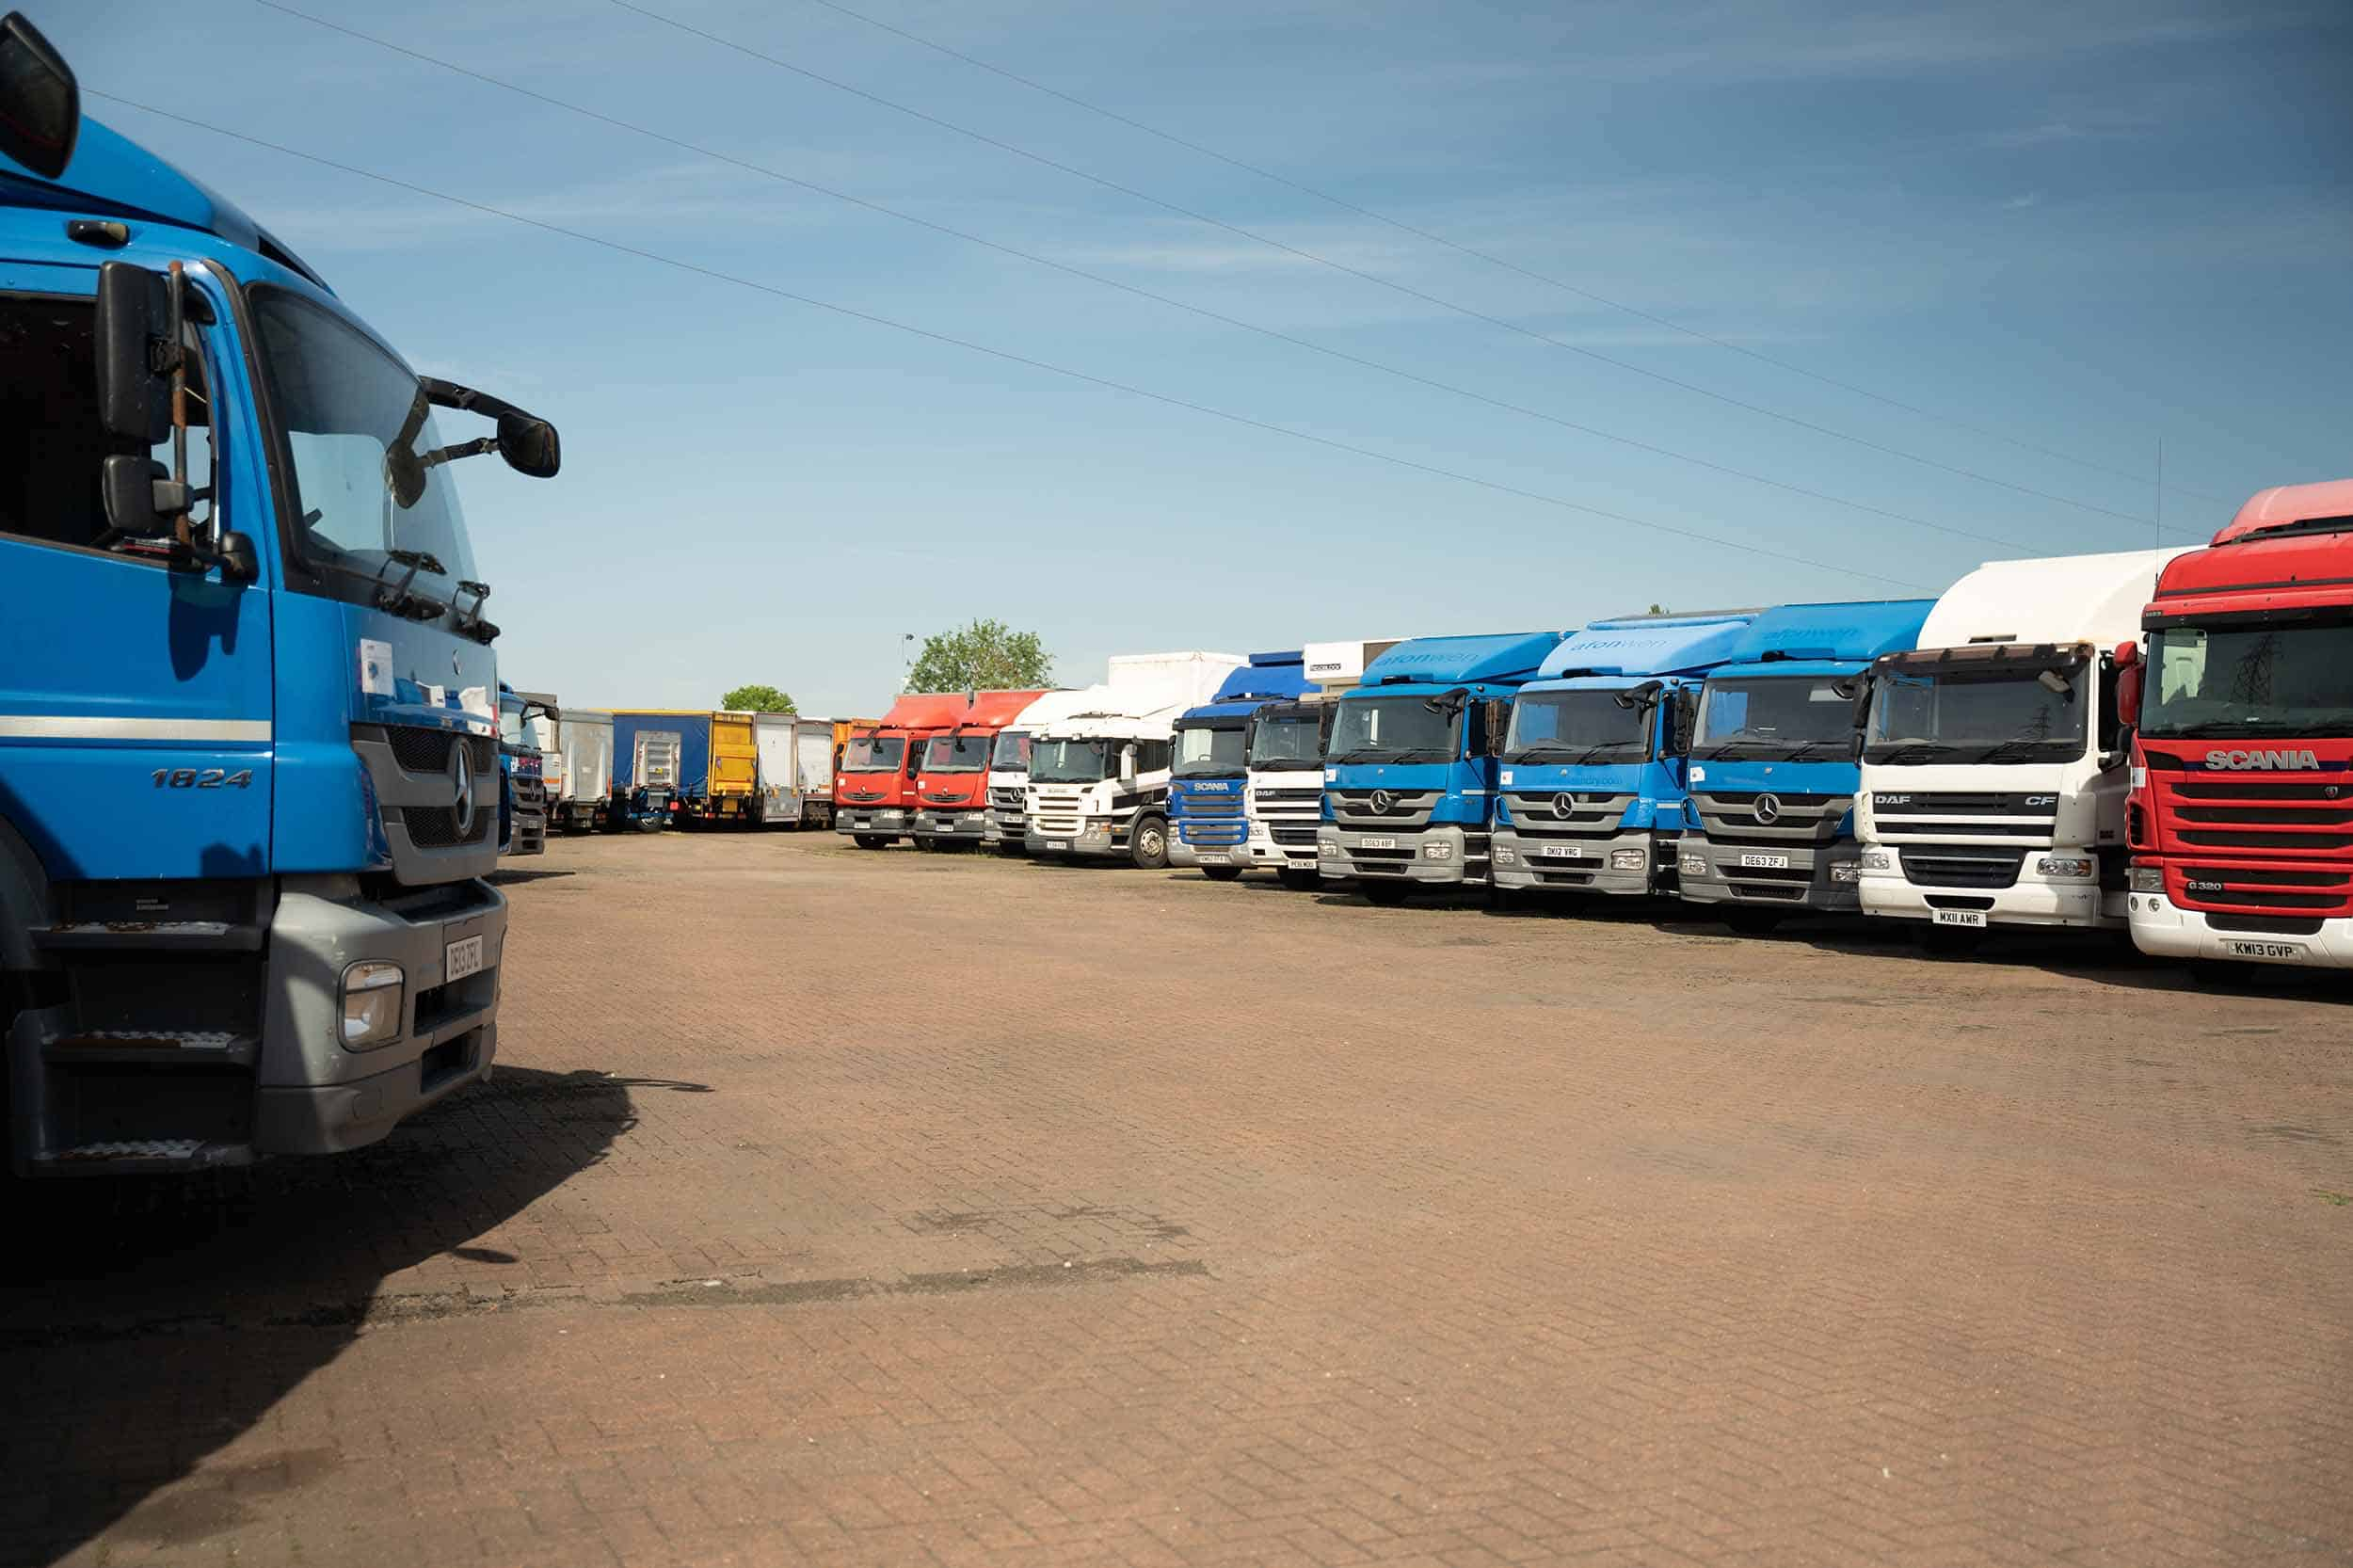 a large selection of used heavy goods vehicles in a forecourt, parked in an orderly fashion